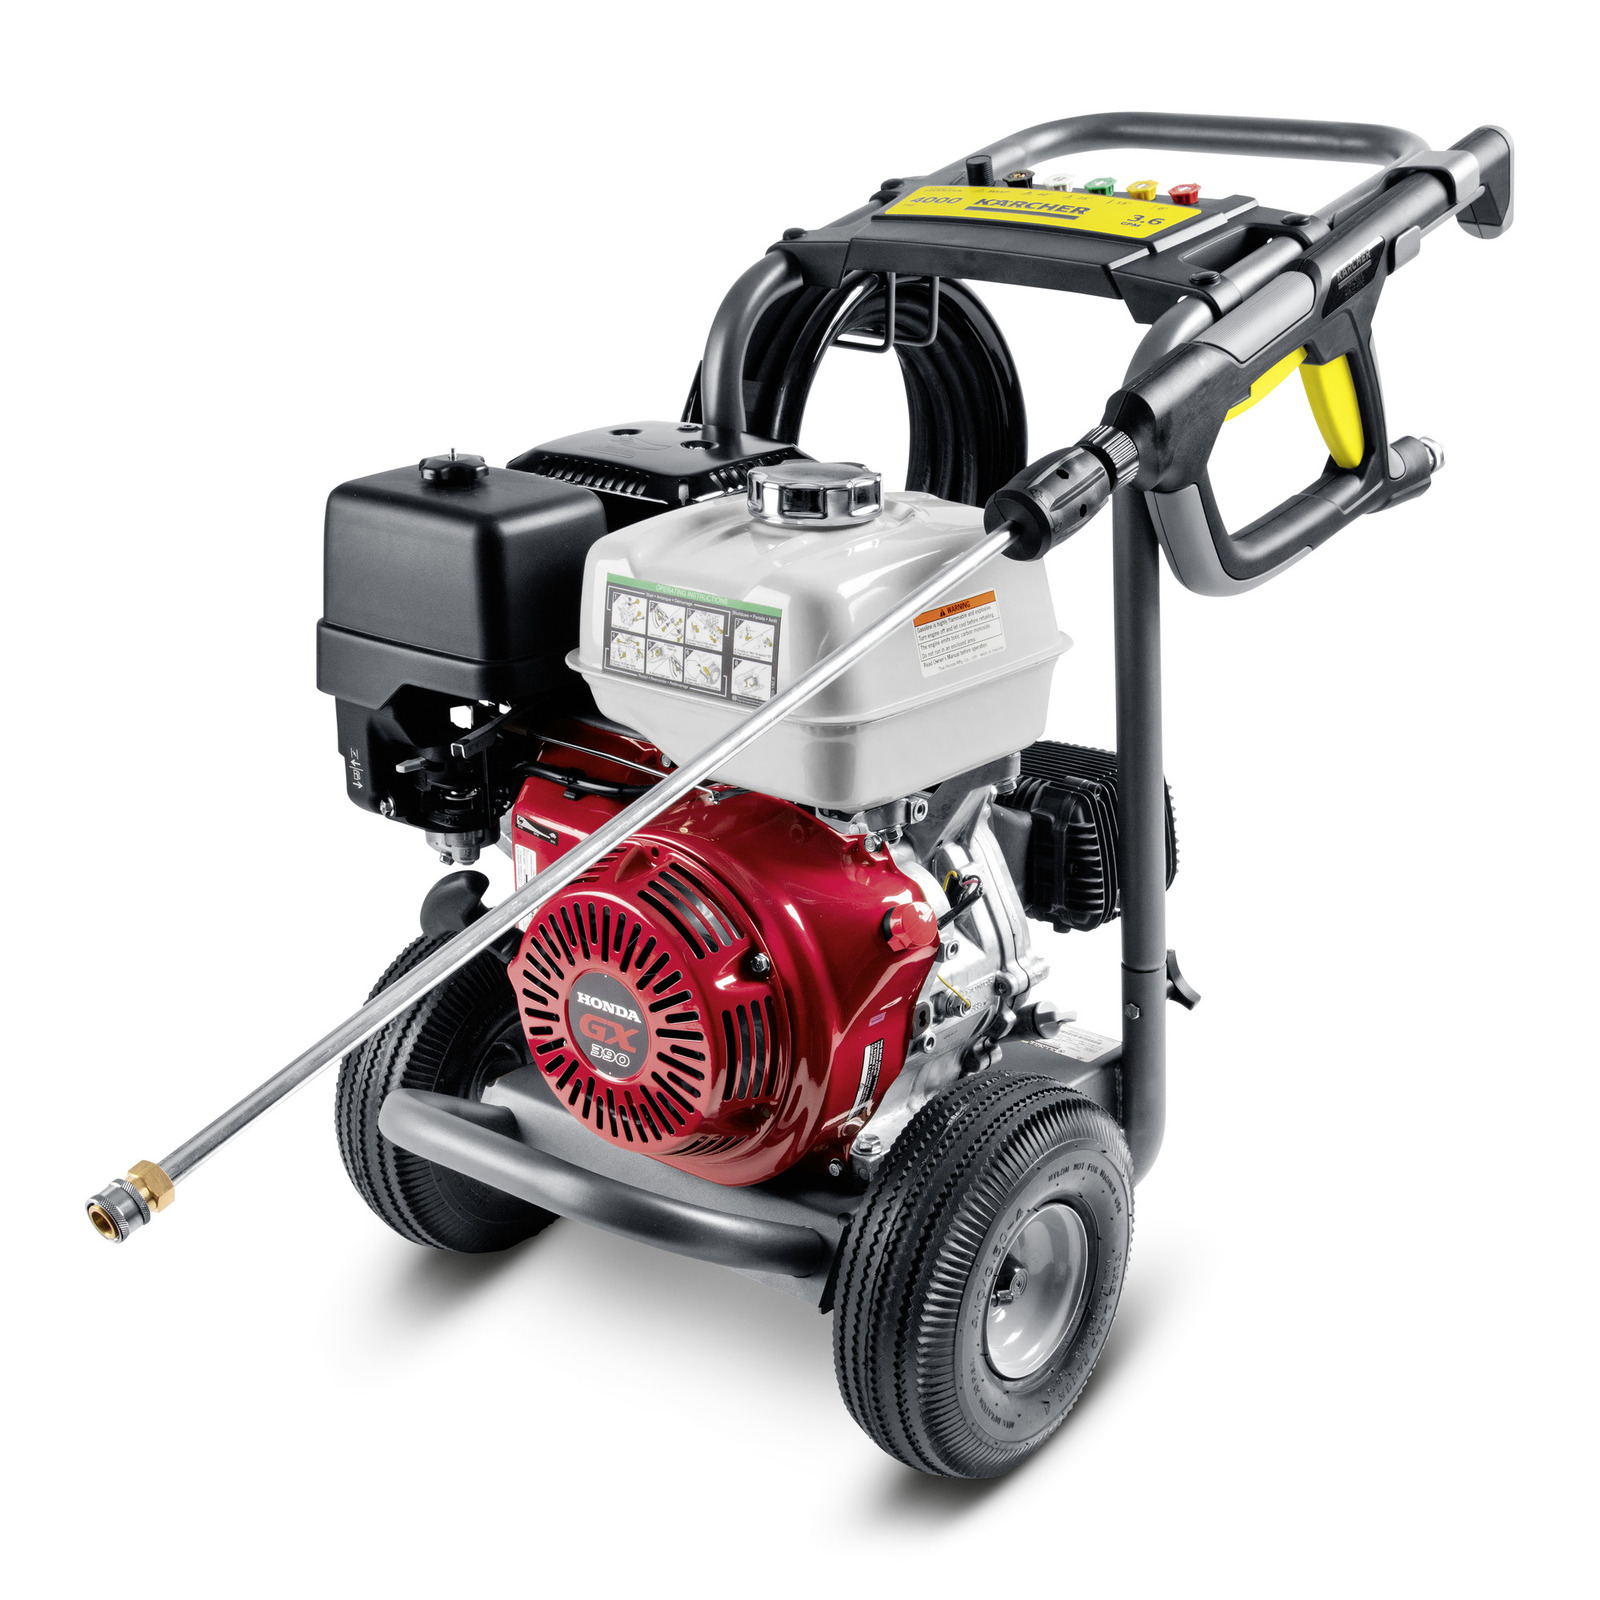 G 4000 Oh Gas Powered Pressure Washer 4000 Psi 1 194 801